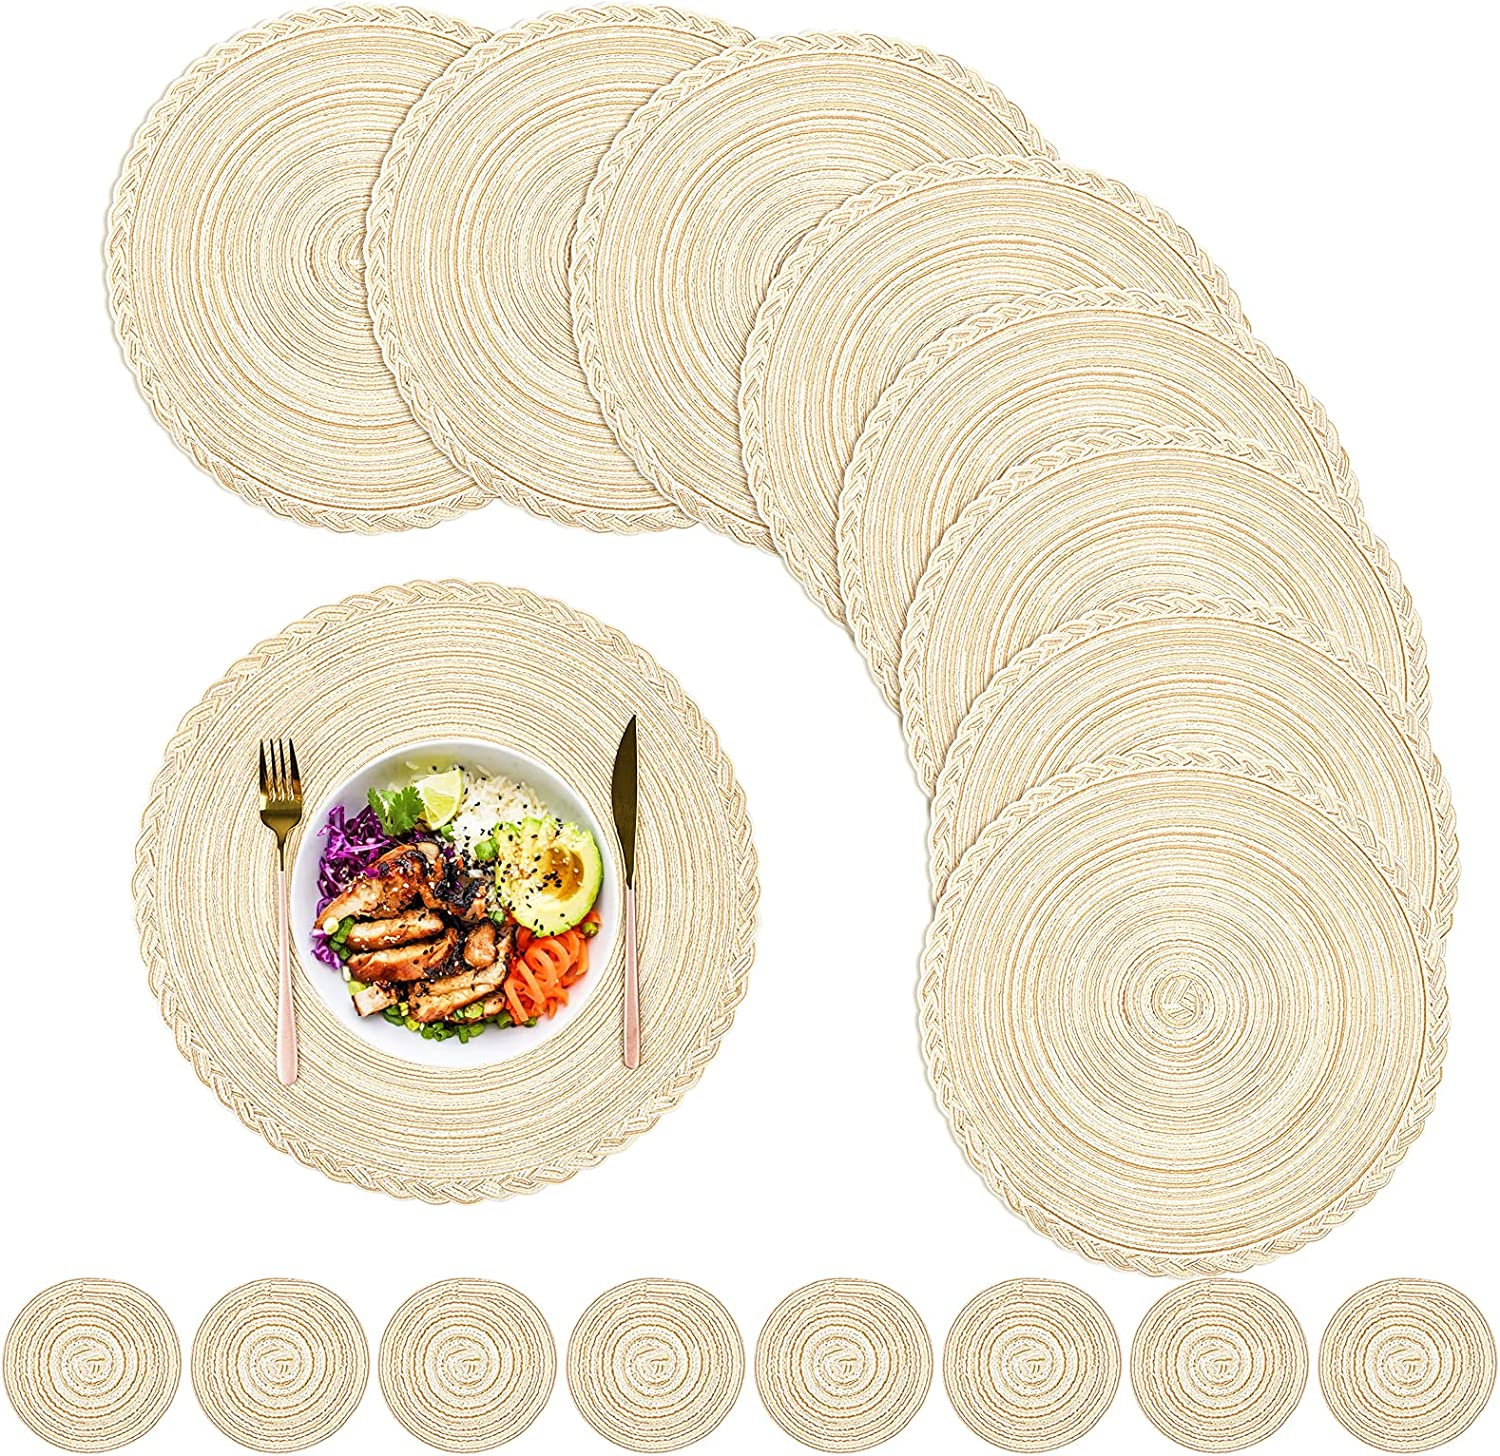 16 New product! New type PCS Round Braided Placemats Premium and Coasters Max 46% OFF Heat -